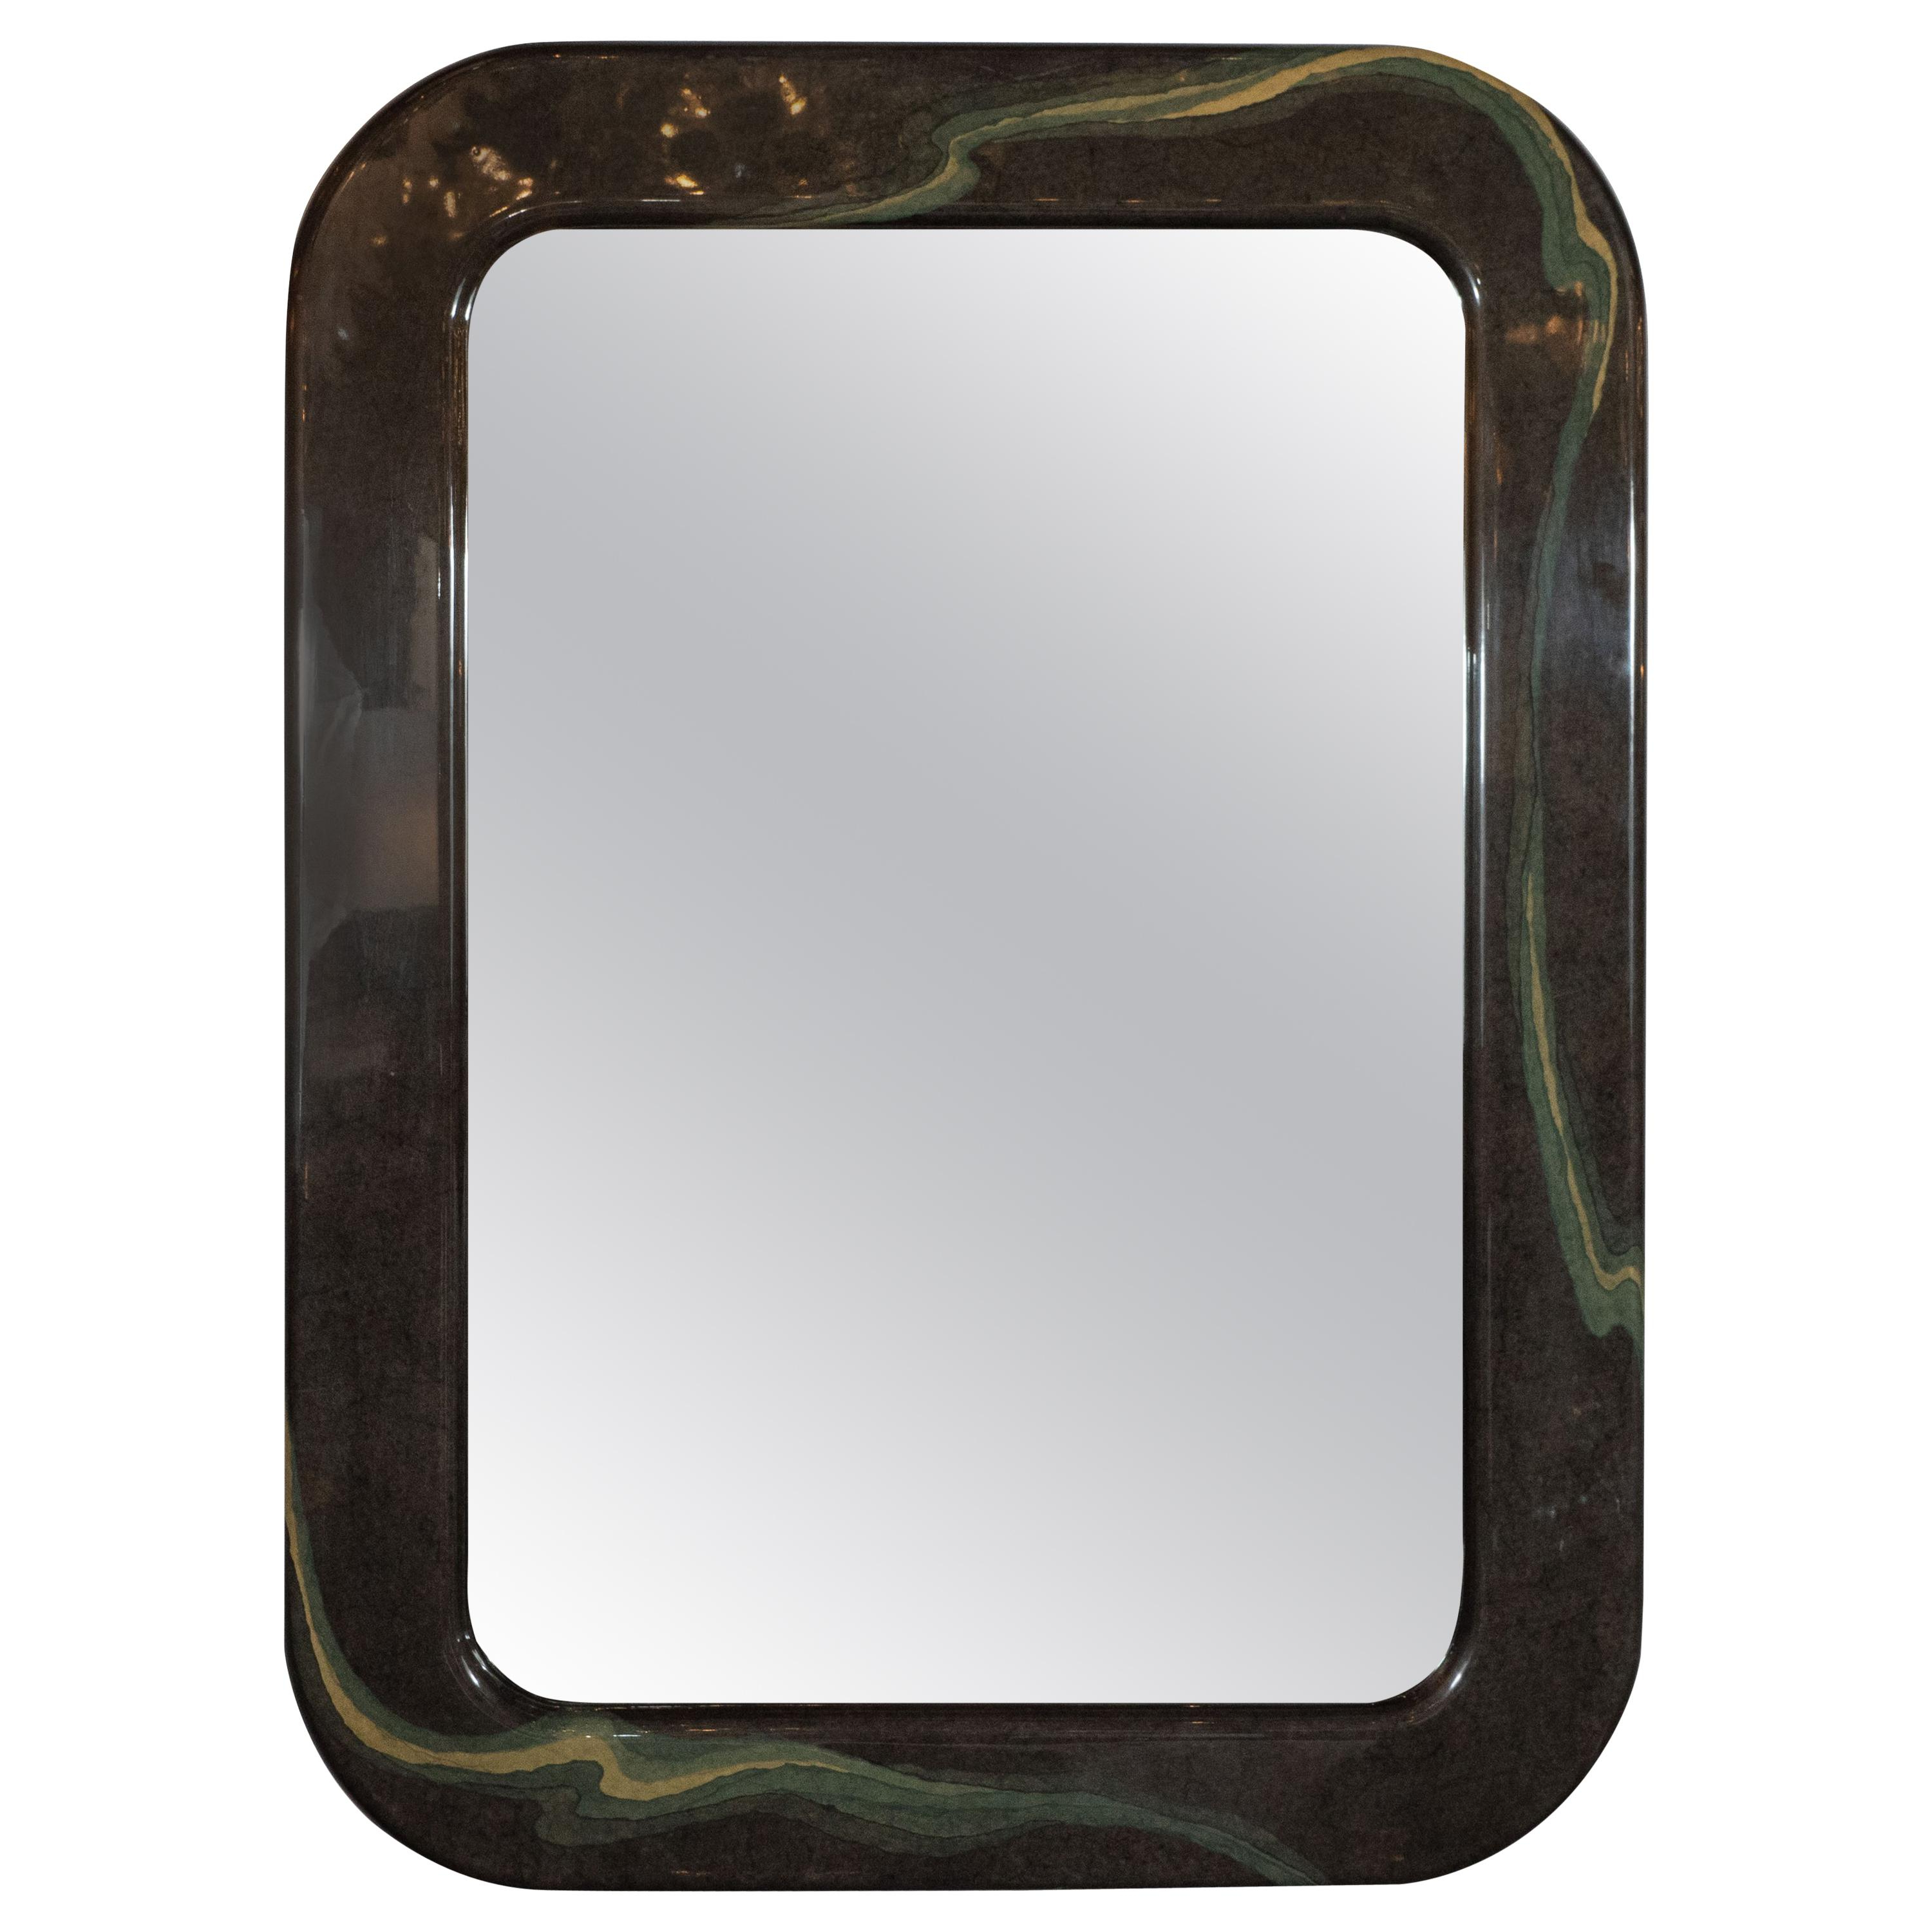 Most Recently Released Mid Century Modern Wall Mirrors Within Mid Century Modern Olive Gray Resin Wall Mirror With Amorphic Swirl  Detailing (View 15 of 20)